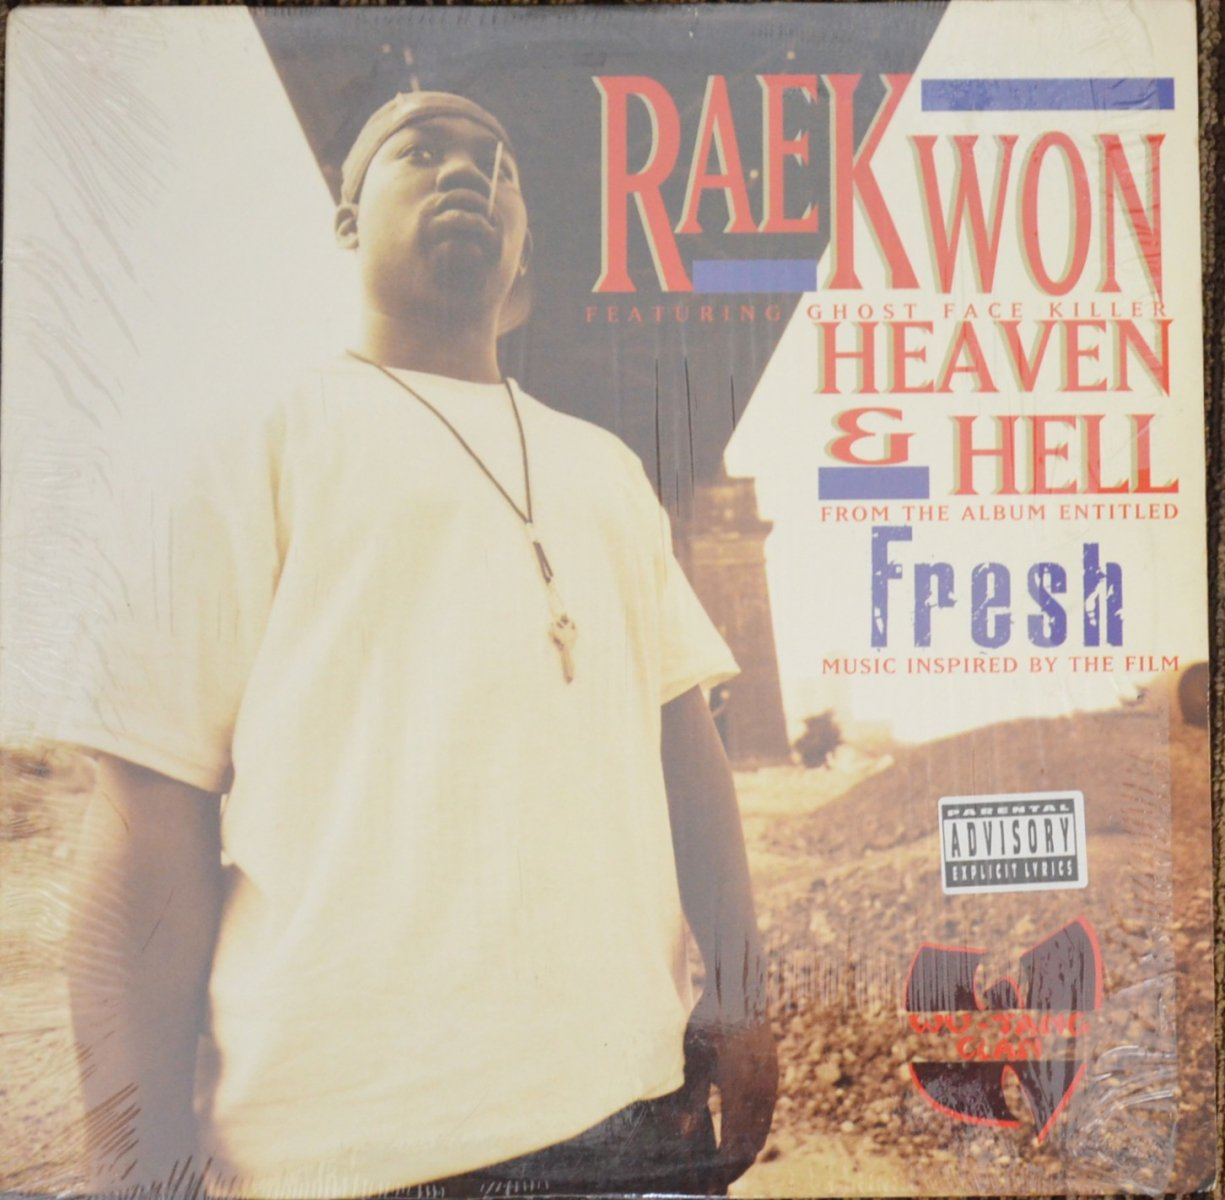 RAEKWON FEATURING GHOST FACE KILLER / HEAVEN & HELL (12